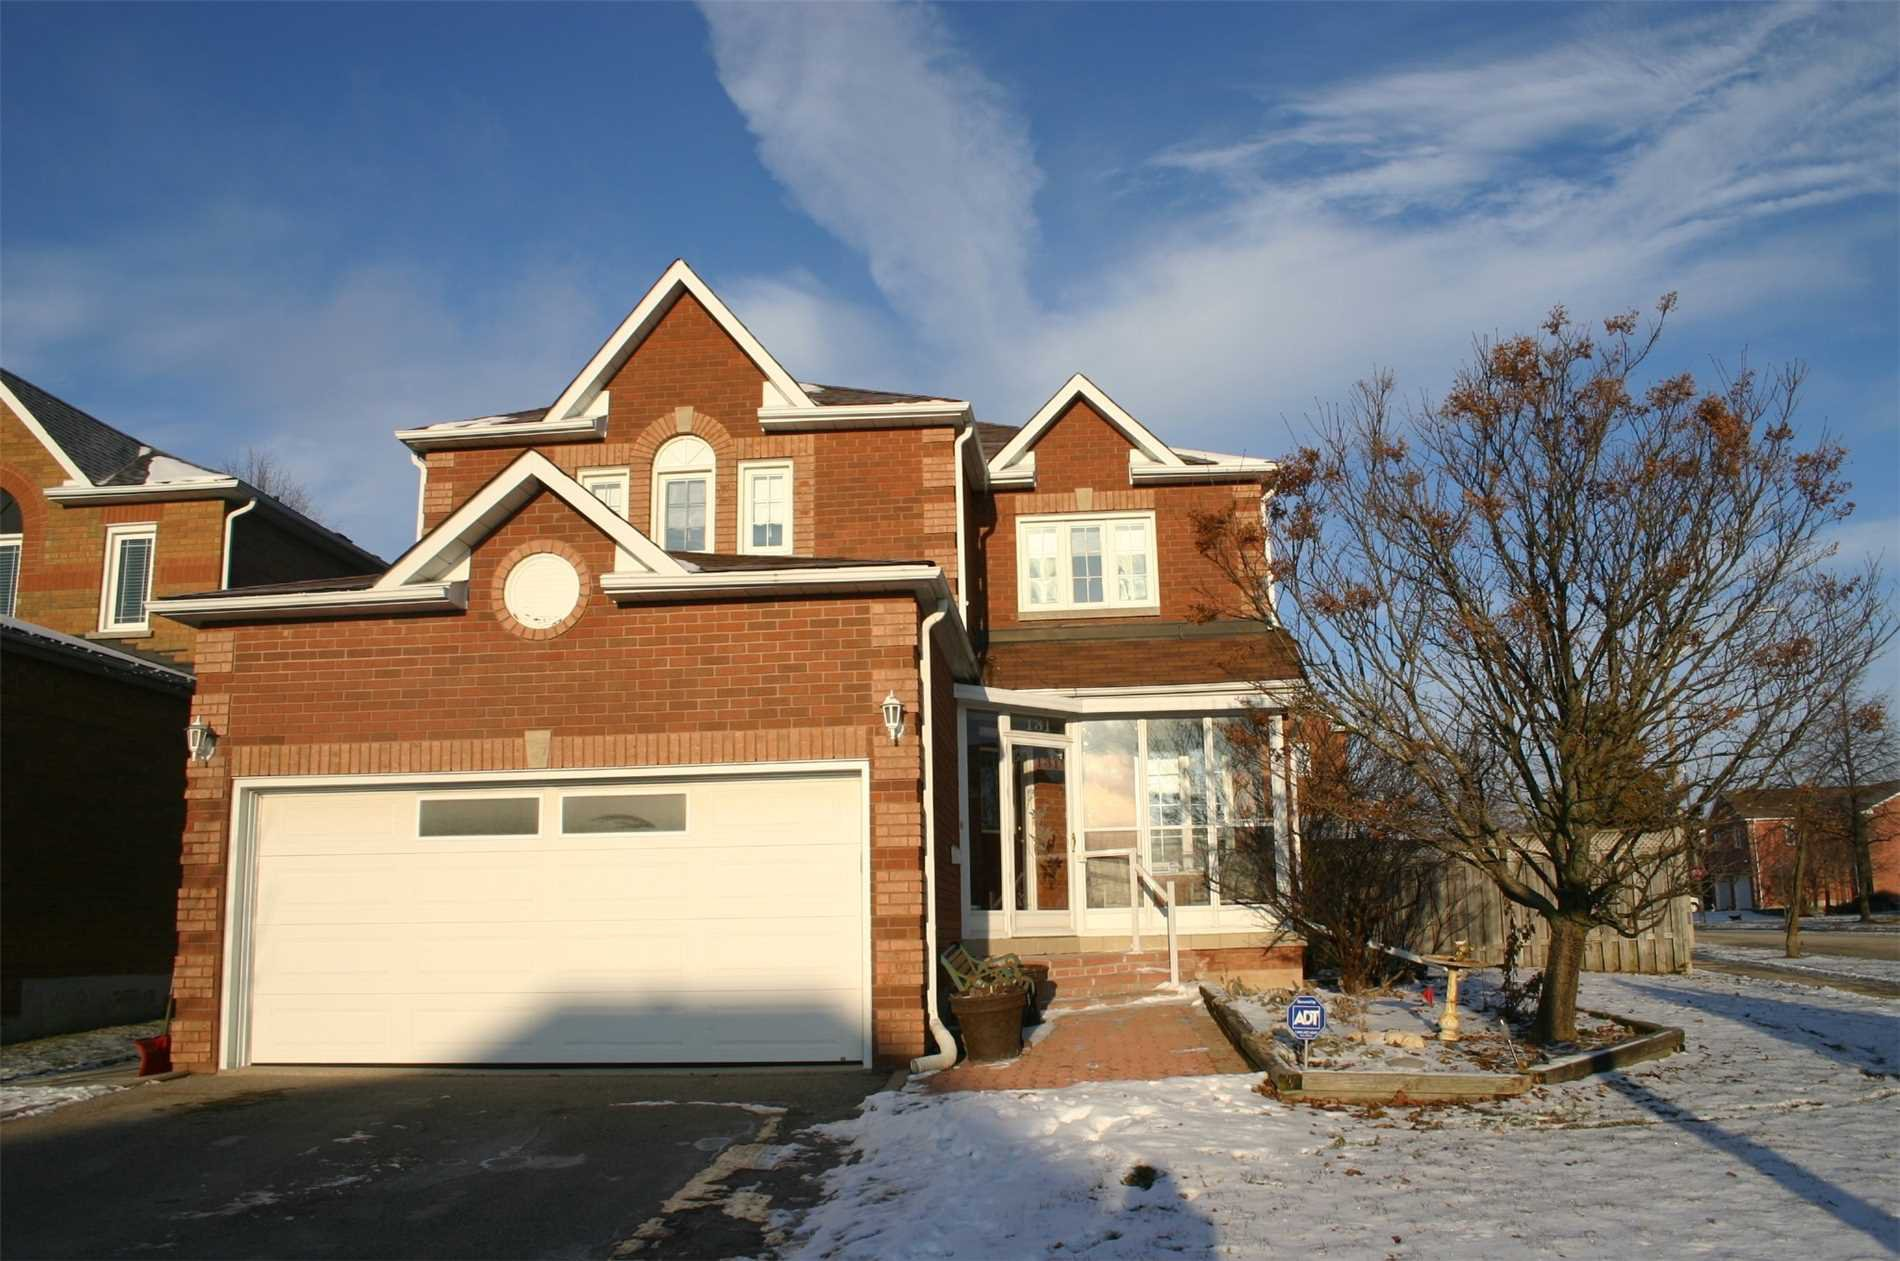 Main Photo: 131 Jordan Drive: Orangeville House (2-Storey) for lease : MLS®# W4337306